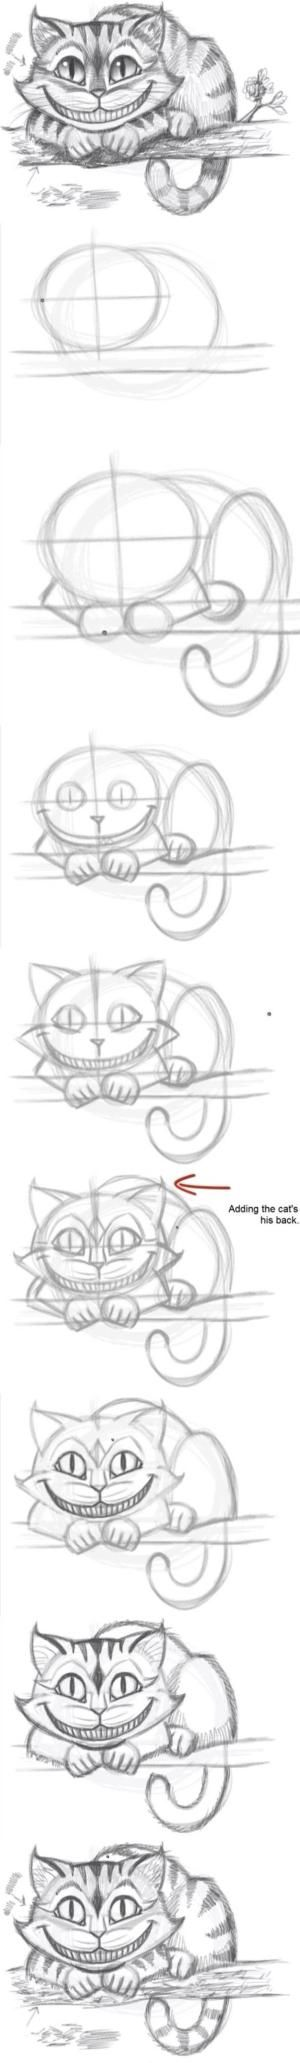 Cómo dibujar el gato de Cheshire por usefuldiy::) #Drawing #Cheshire_Cat por LisaDB